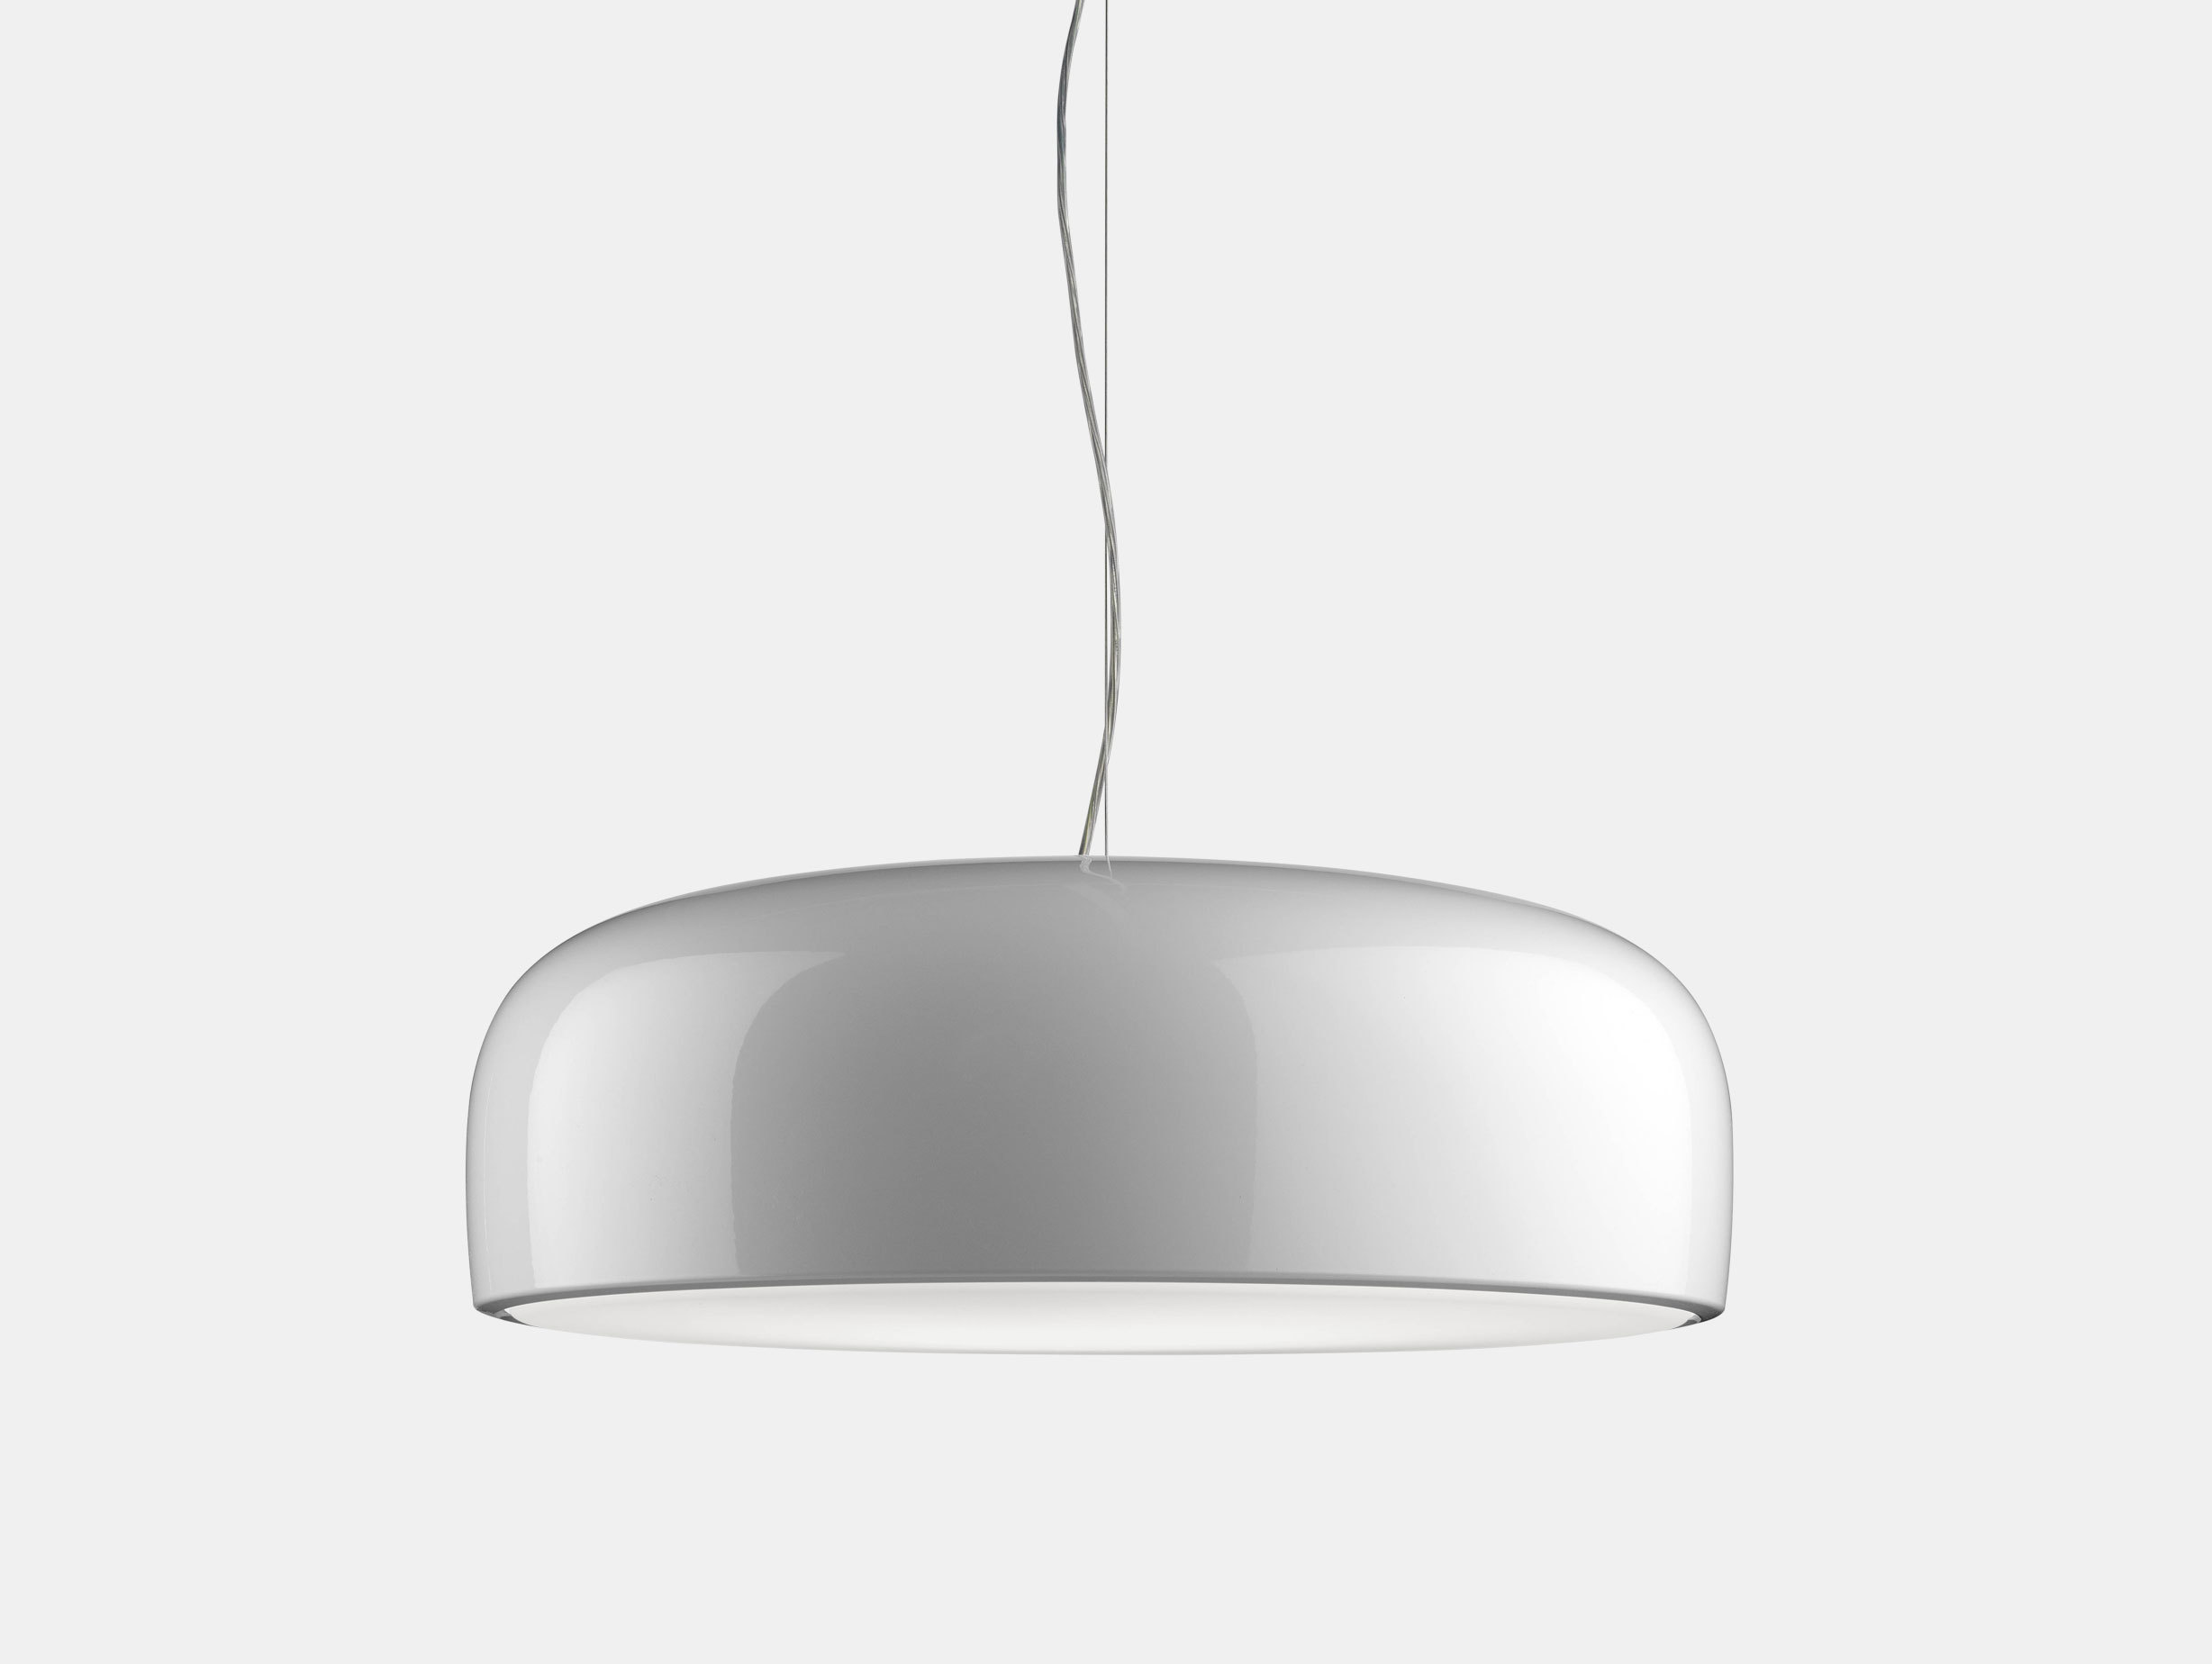 Smithfield Eco LED Suspension Light image 3